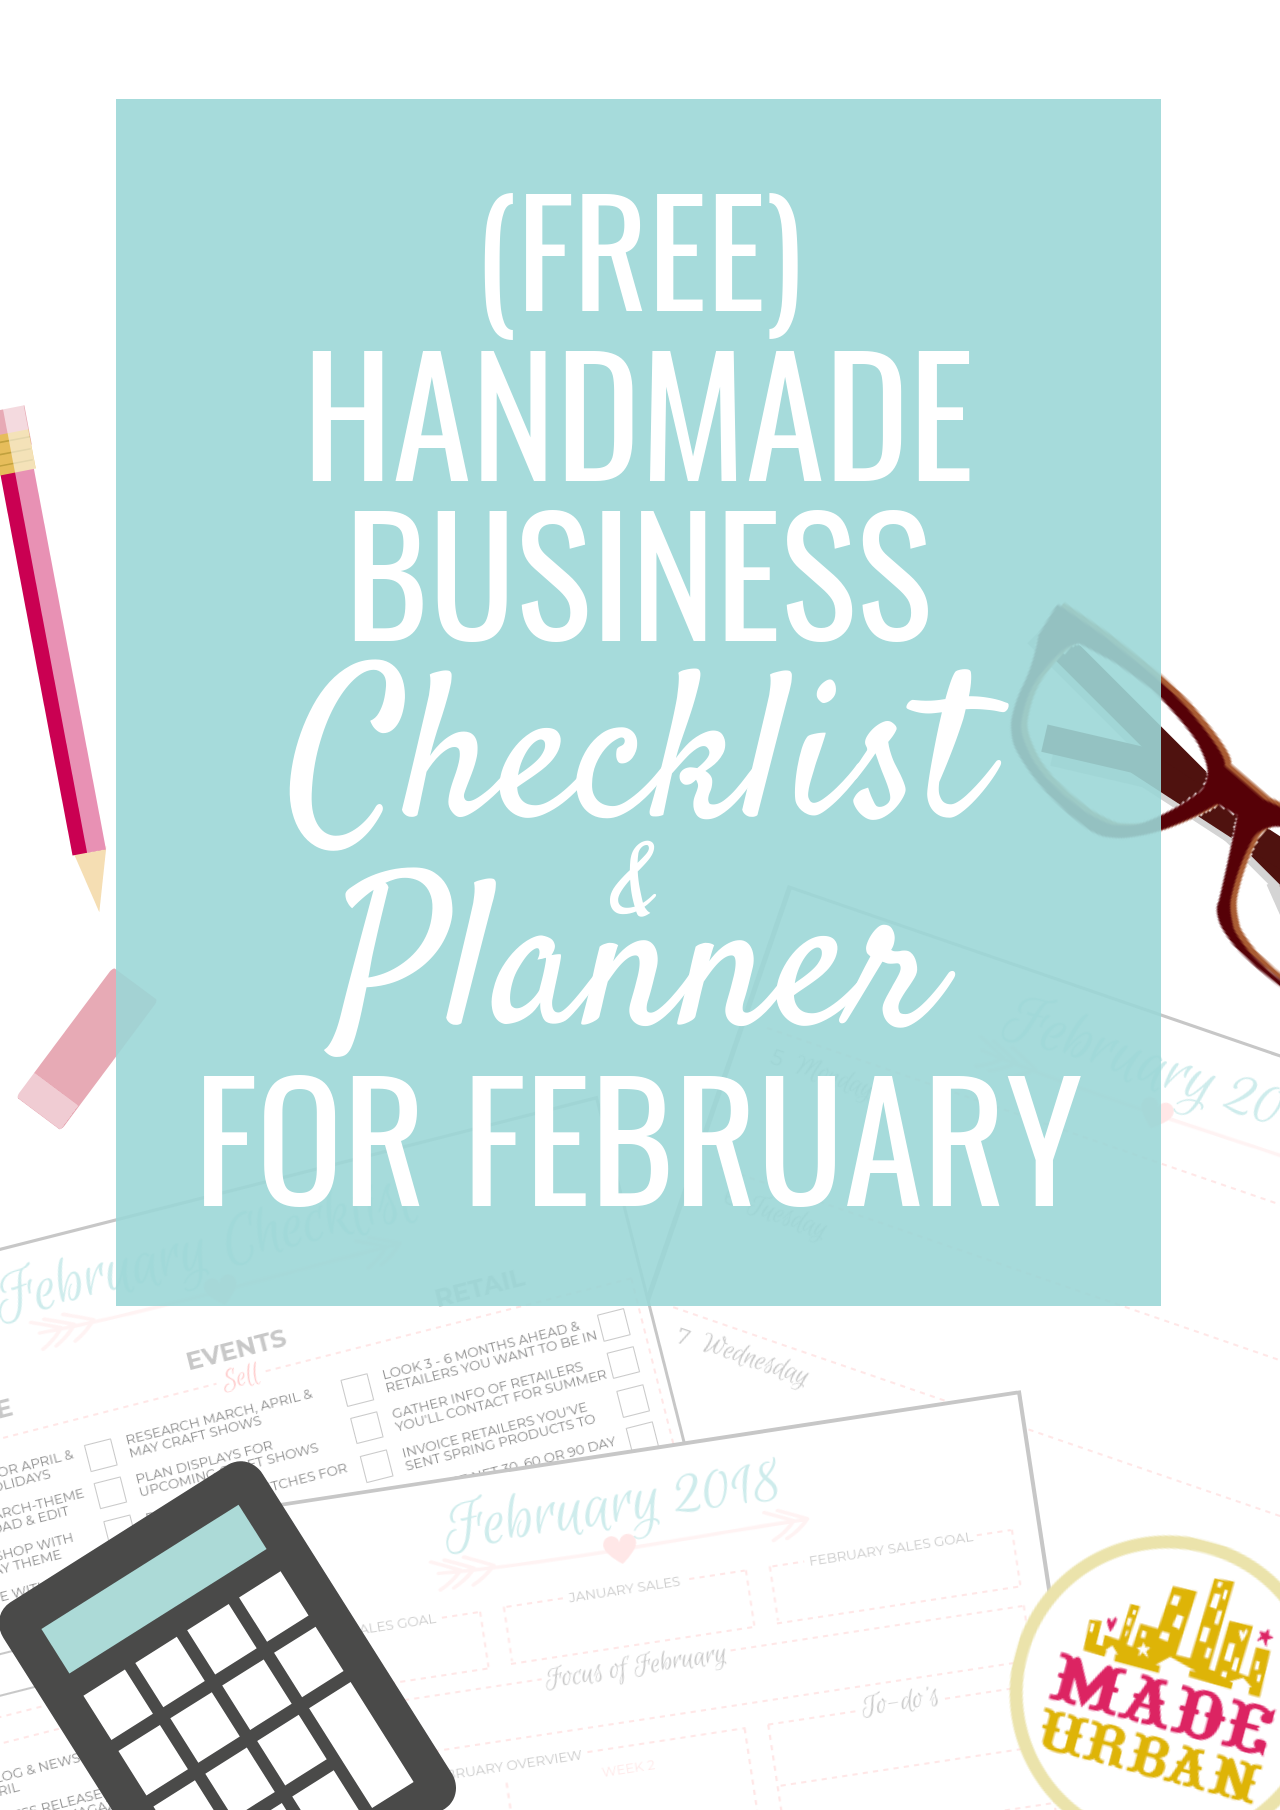 Here's what a handmade business owner should be working on in February. This article comes with a free printable checklist and planner for the month.